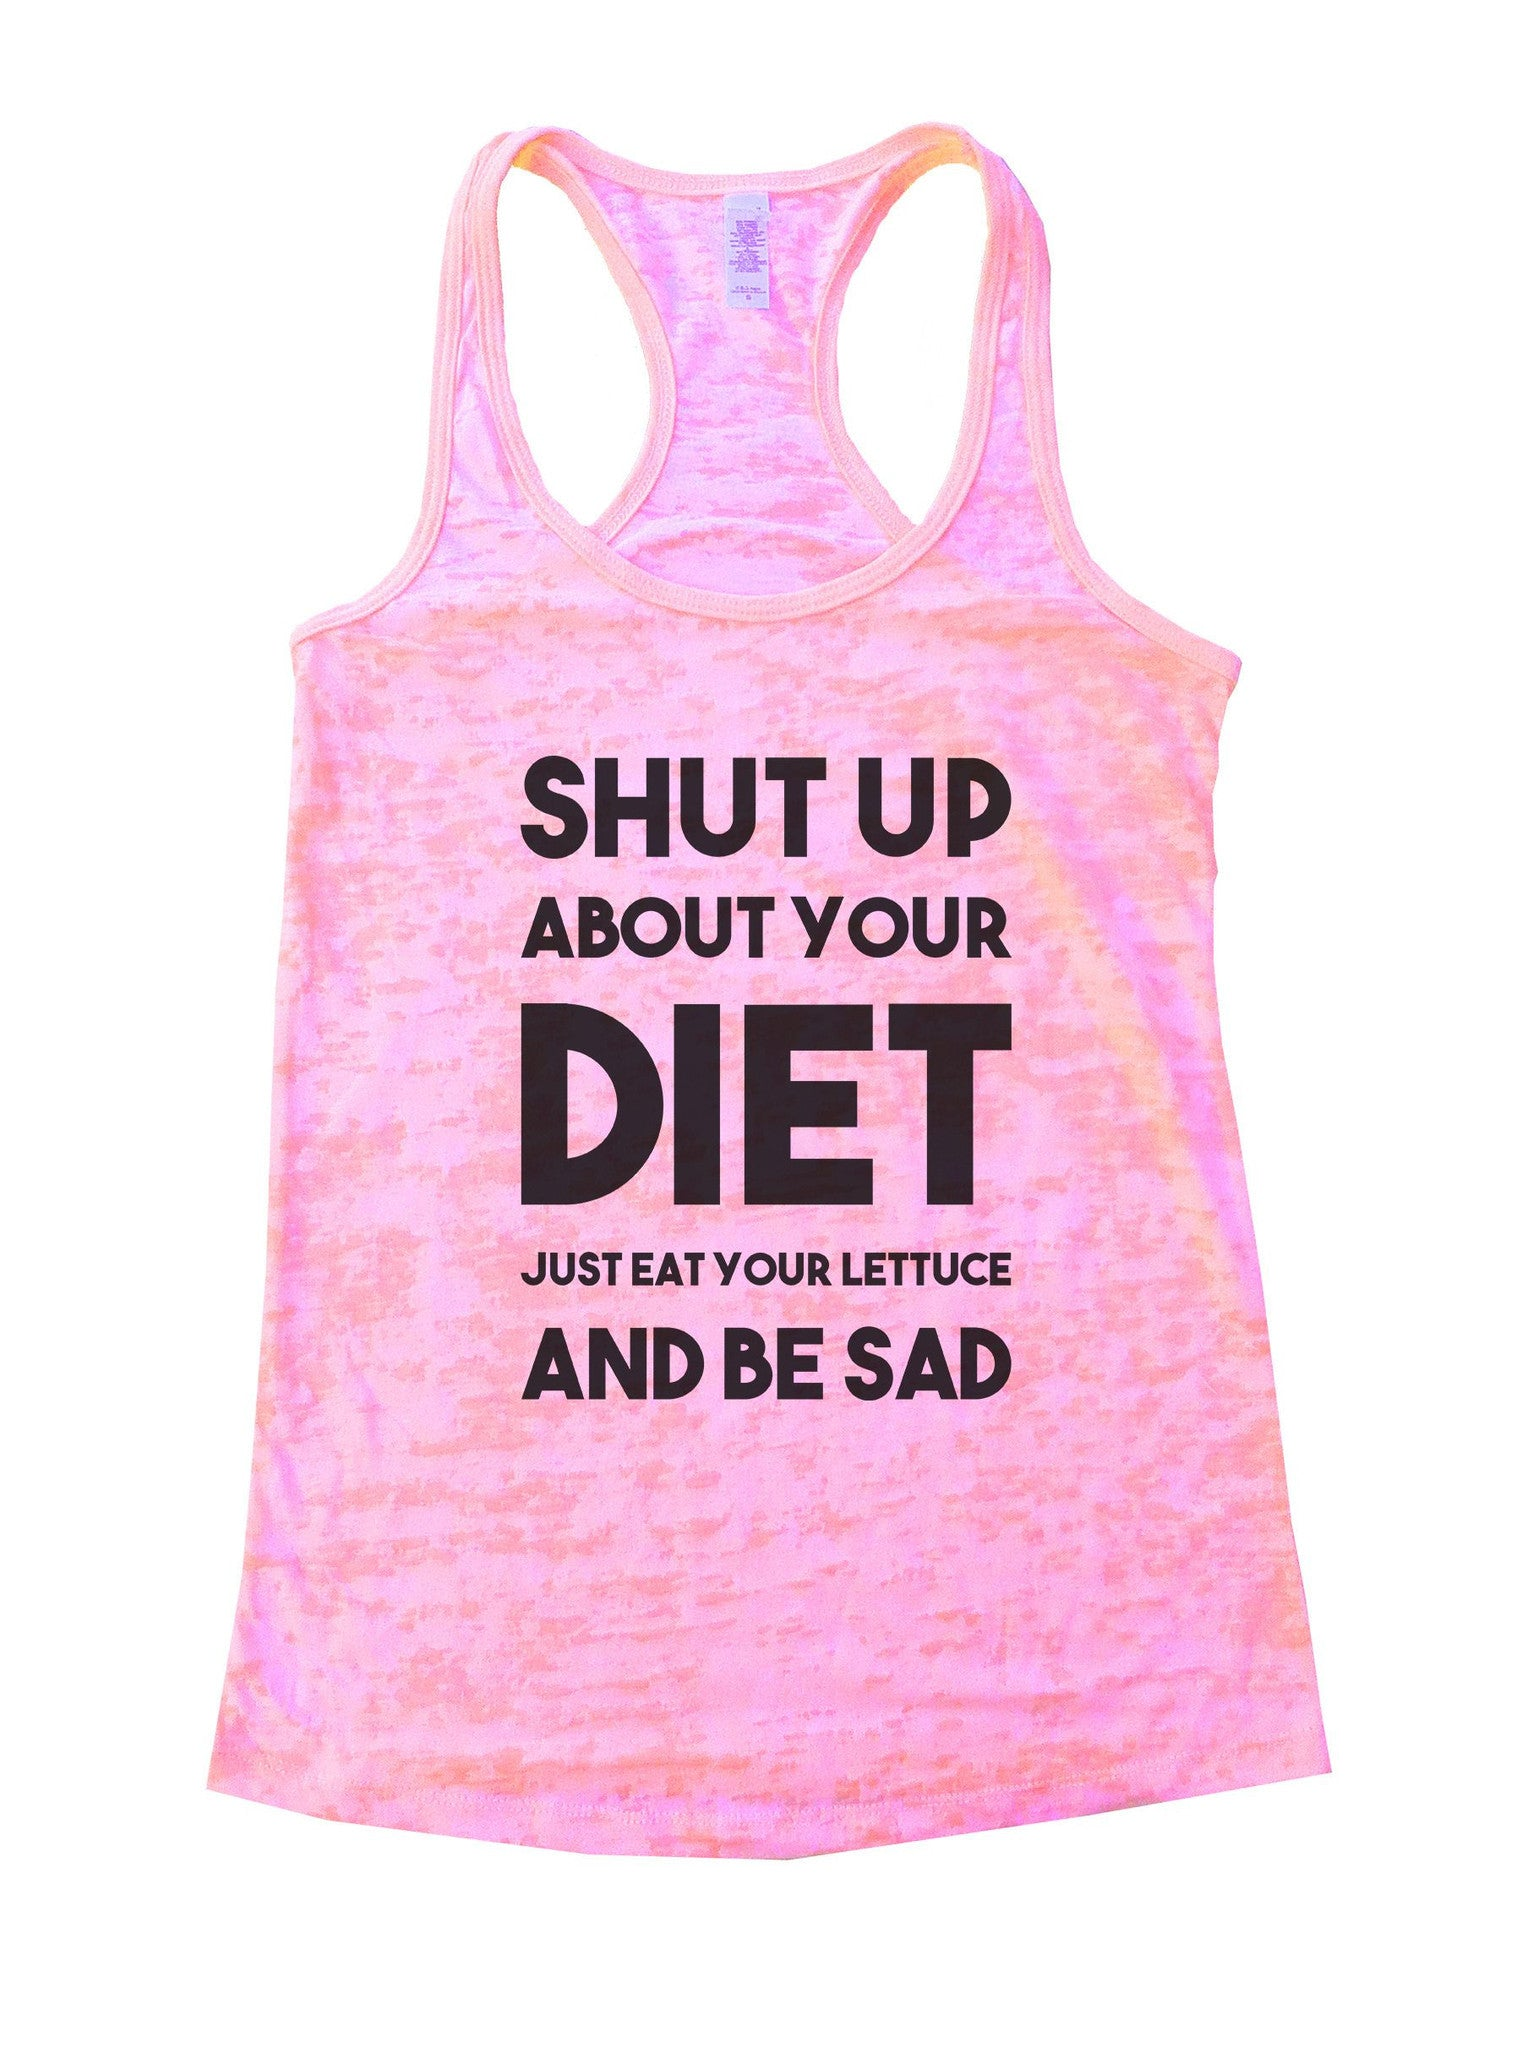 Shut Up About Your Diet Just Eat Your Lettuce And Be Sad Burnout Tank Top By BurnoutTankTops.com - 856 - Funny Shirts Tank Tops Burnouts and Triblends  - 2